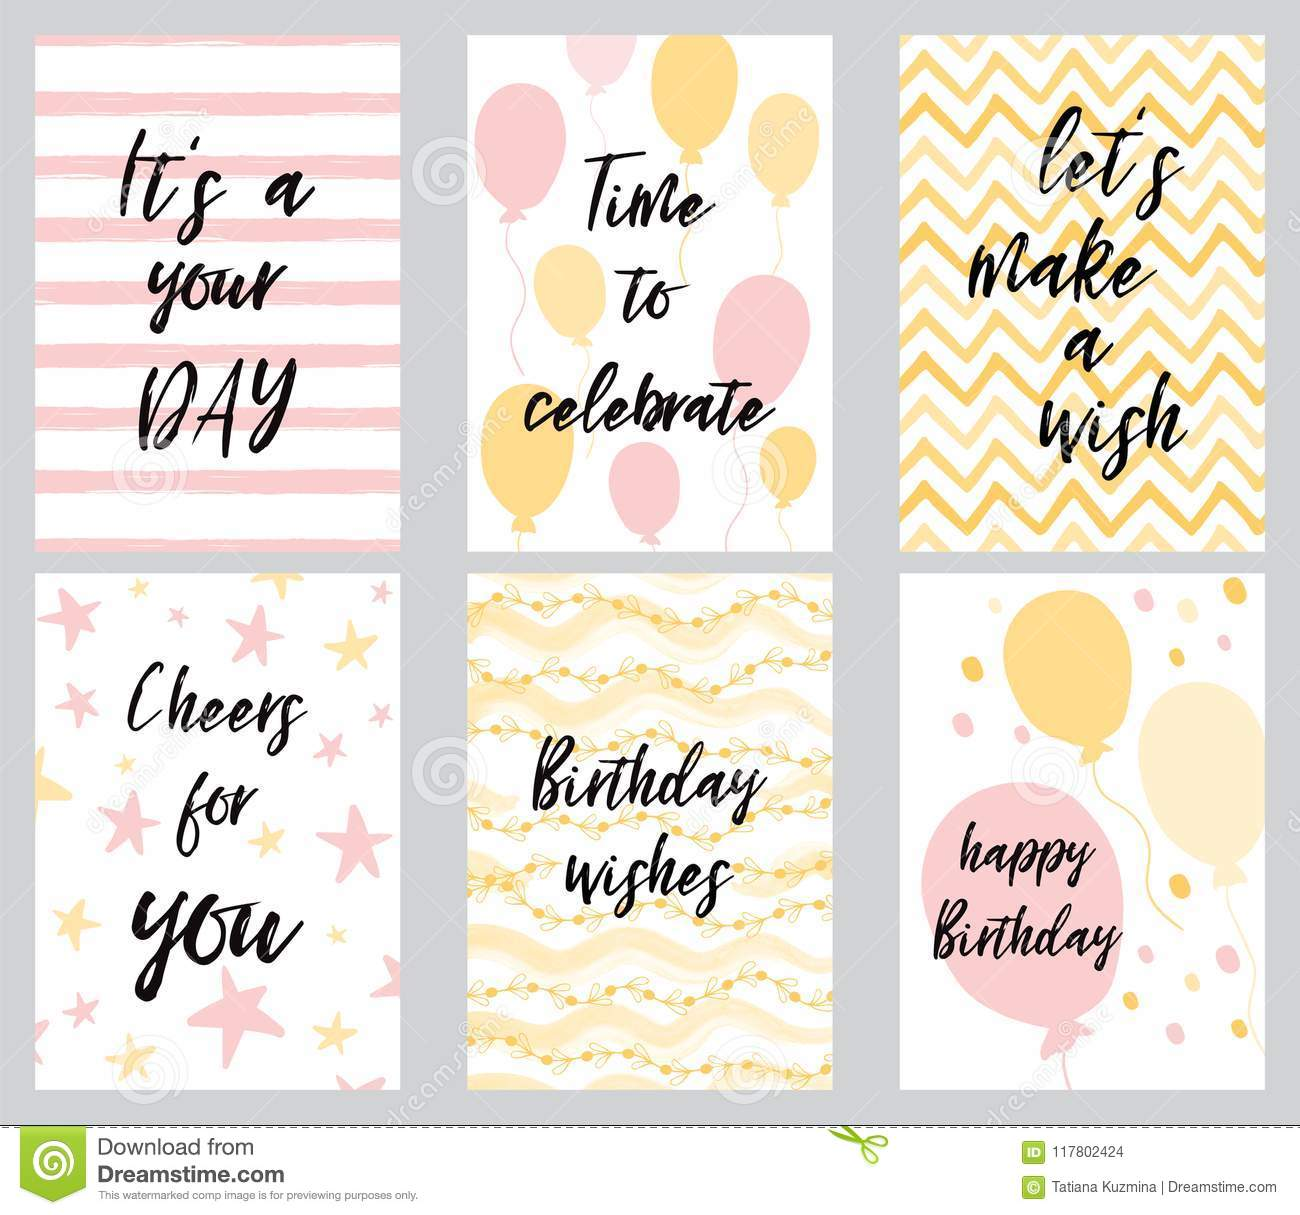 Happy Birthday Greeting Card And Party Invitation Templates Vector Illustration Hand Drawn Style In Light Pink Yellow Colors Cute Phrases Quotes